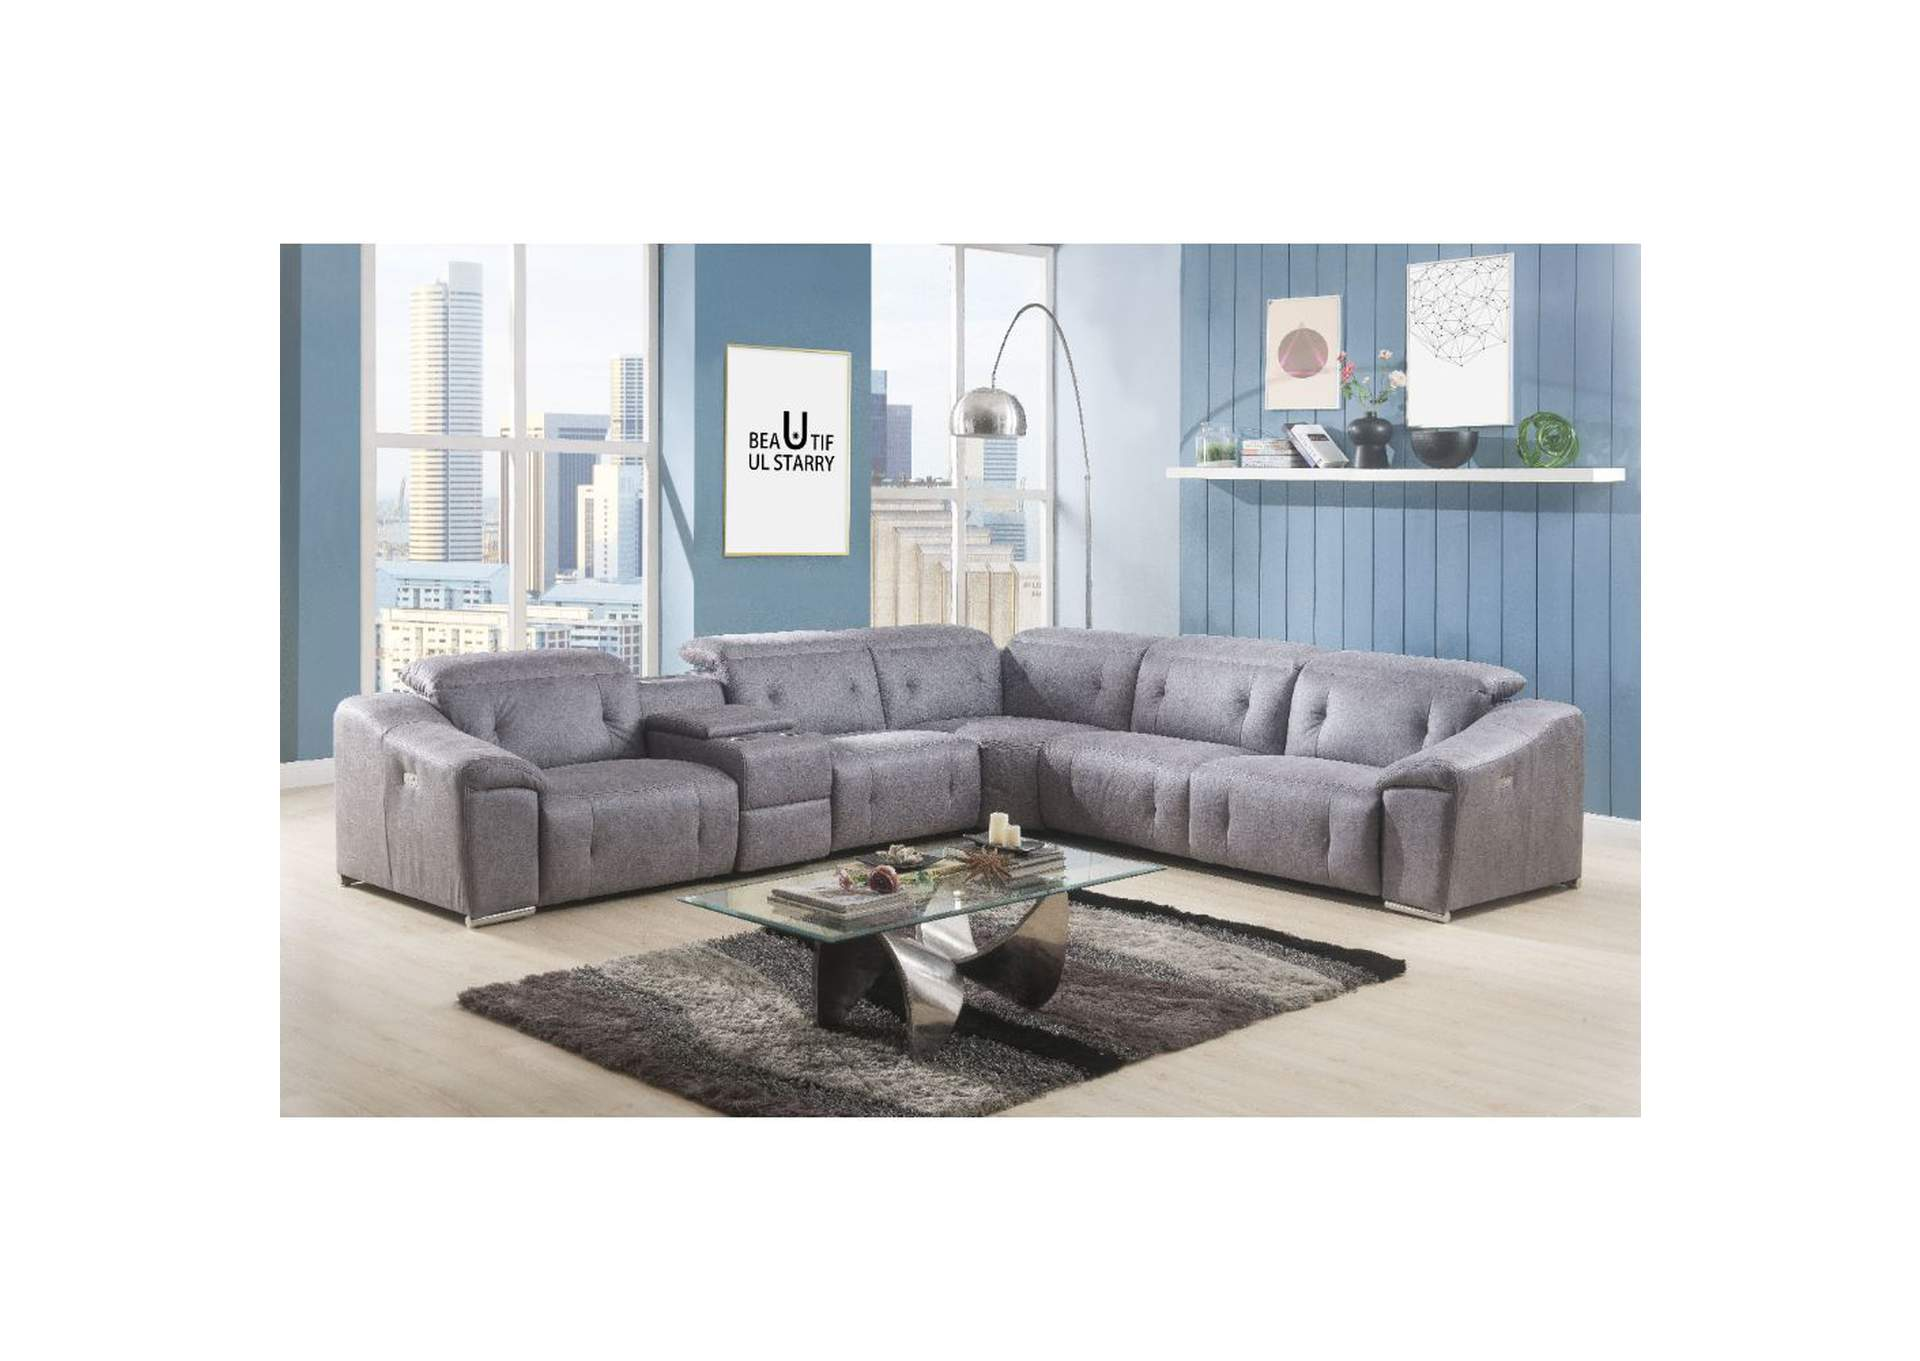 The Furniture Outlet NY Hosta Gray Microfiber Sectional Sofa